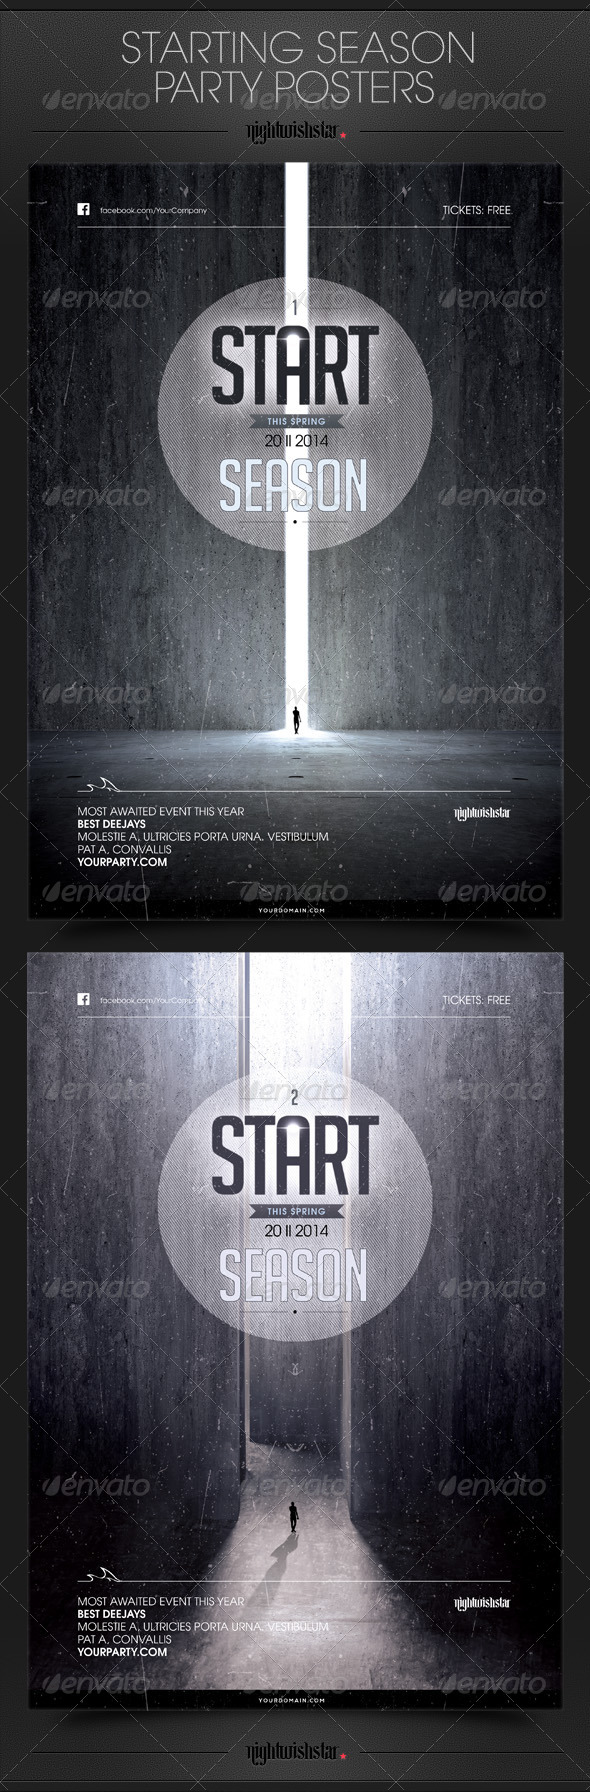 GraphicRiver Starting Season Party Poster 6839265